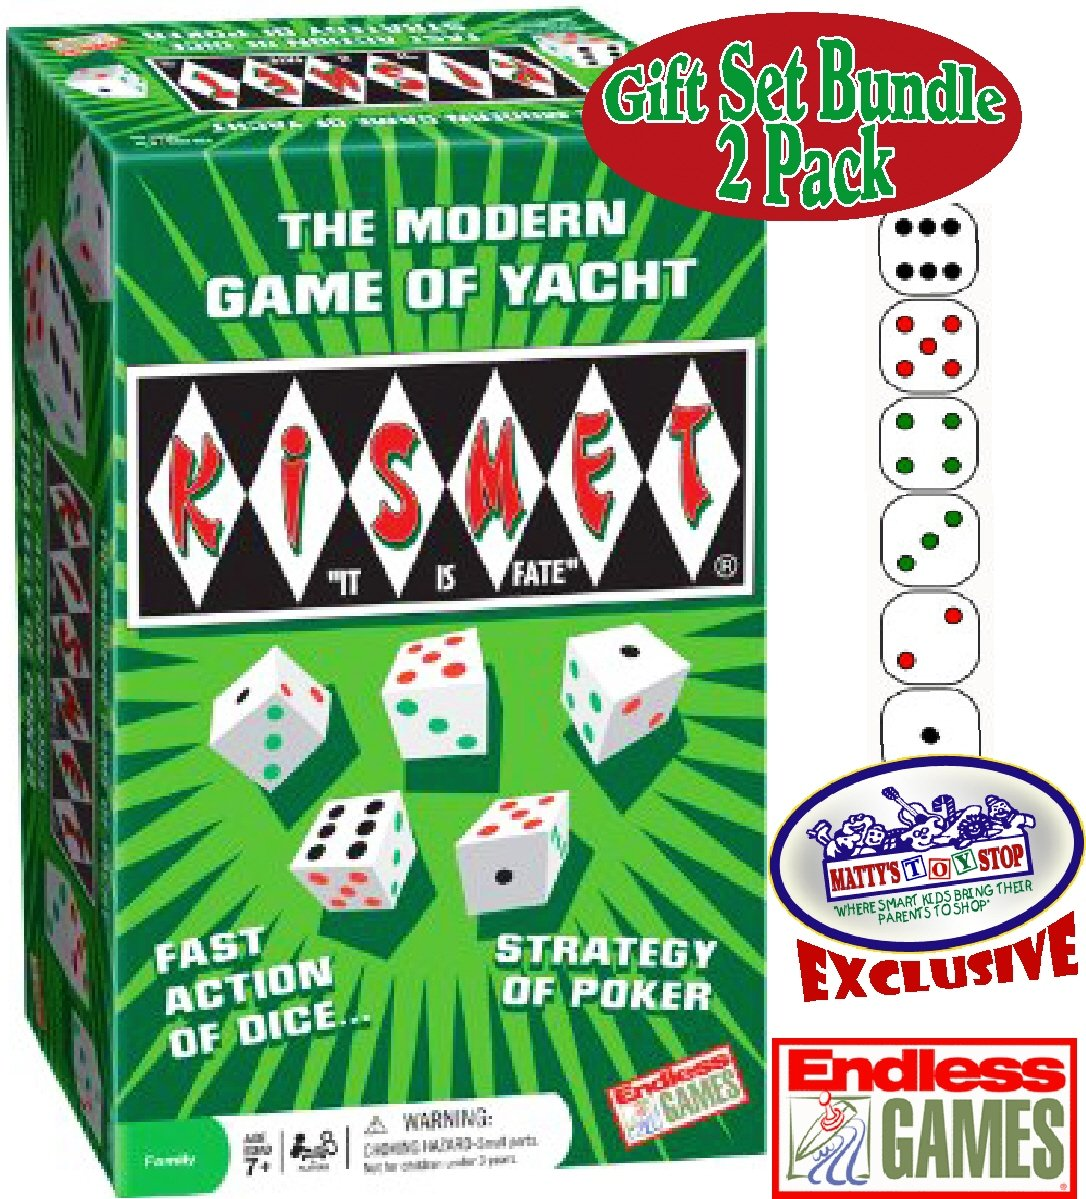 Kismet Dice Poker Game of Modern Yacht & Replacement Scorepads Deluxe Gift Set Bundle - 2 Pack by Endless Games (Image #2)